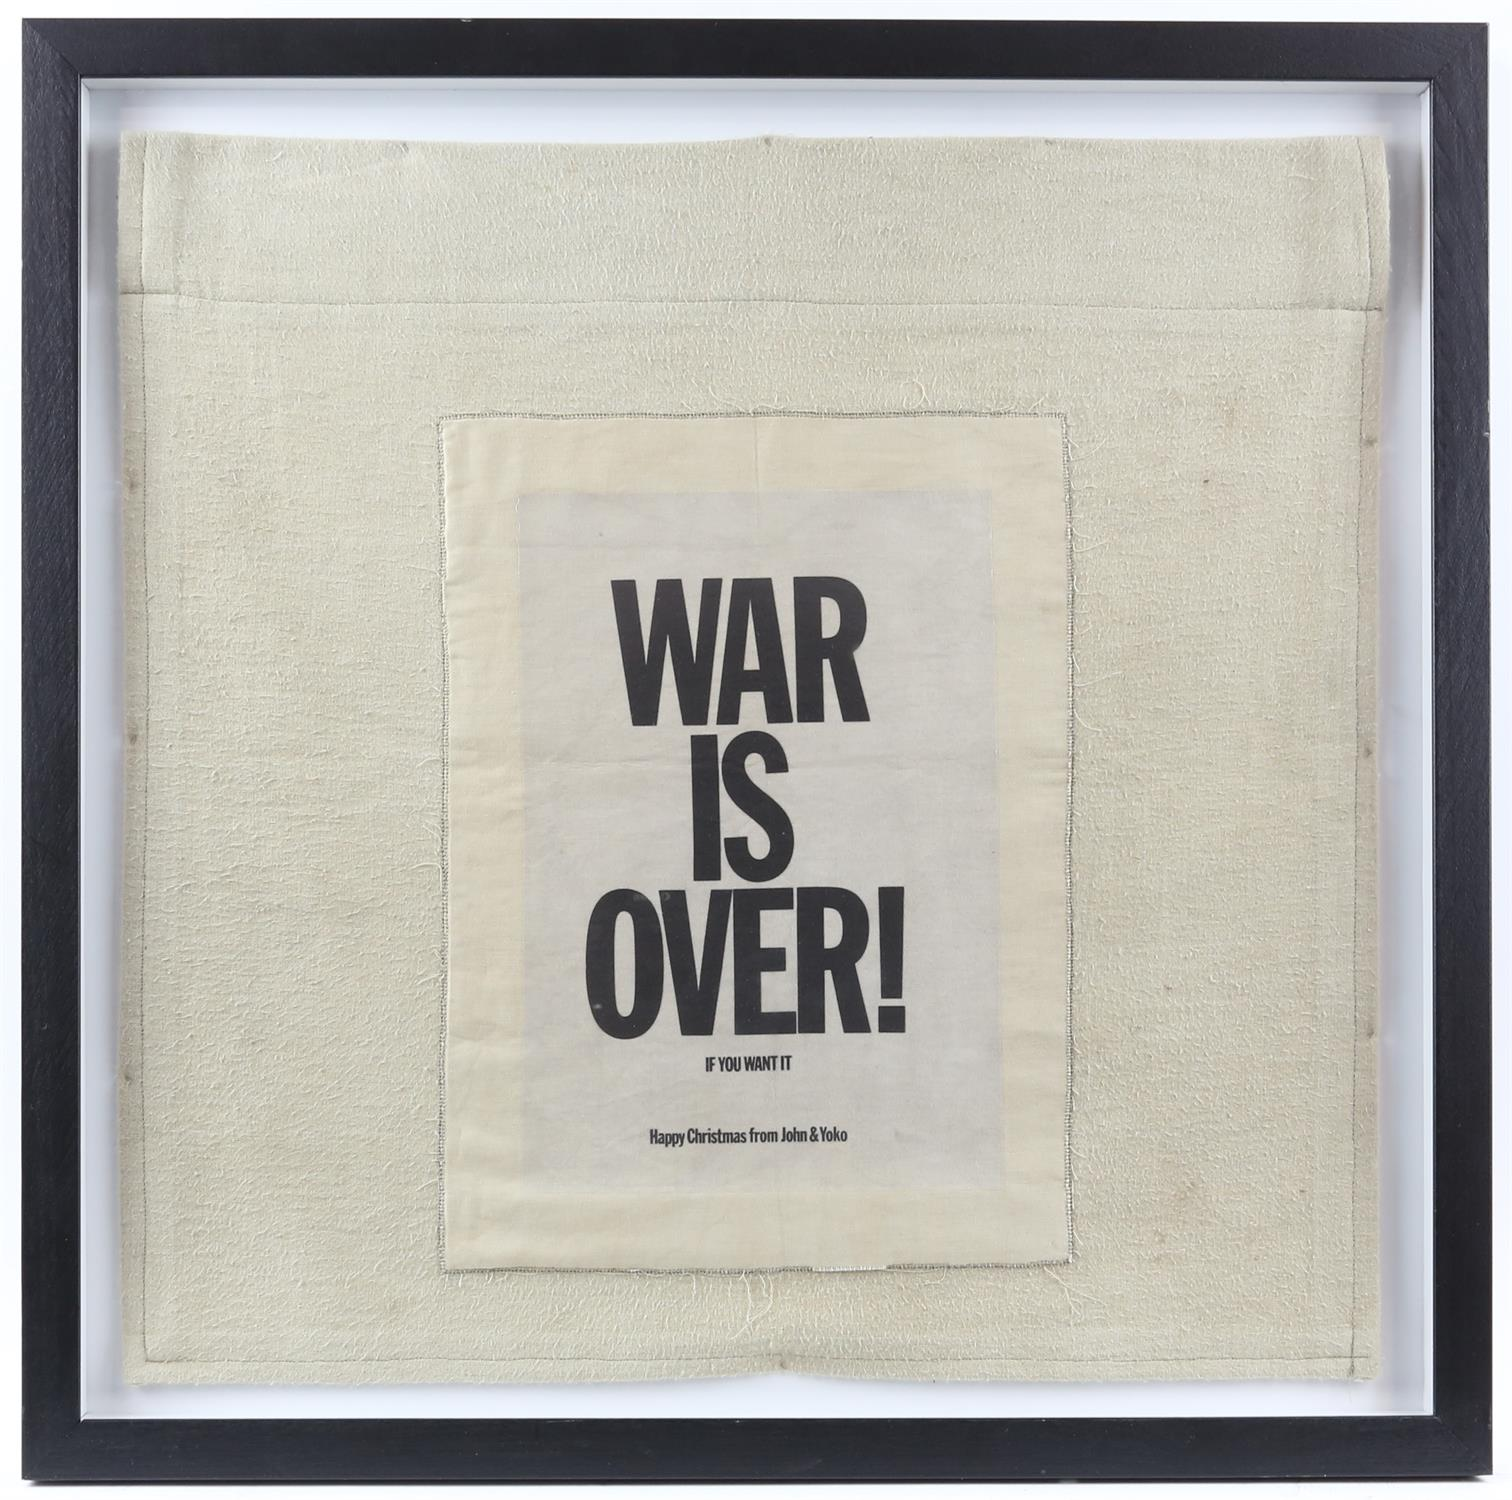 John Lennon & Yoko Ono. 'War is Over' cloth banner. Size overall 46 x 46cm. Framed and glazed. - Image 2 of 2